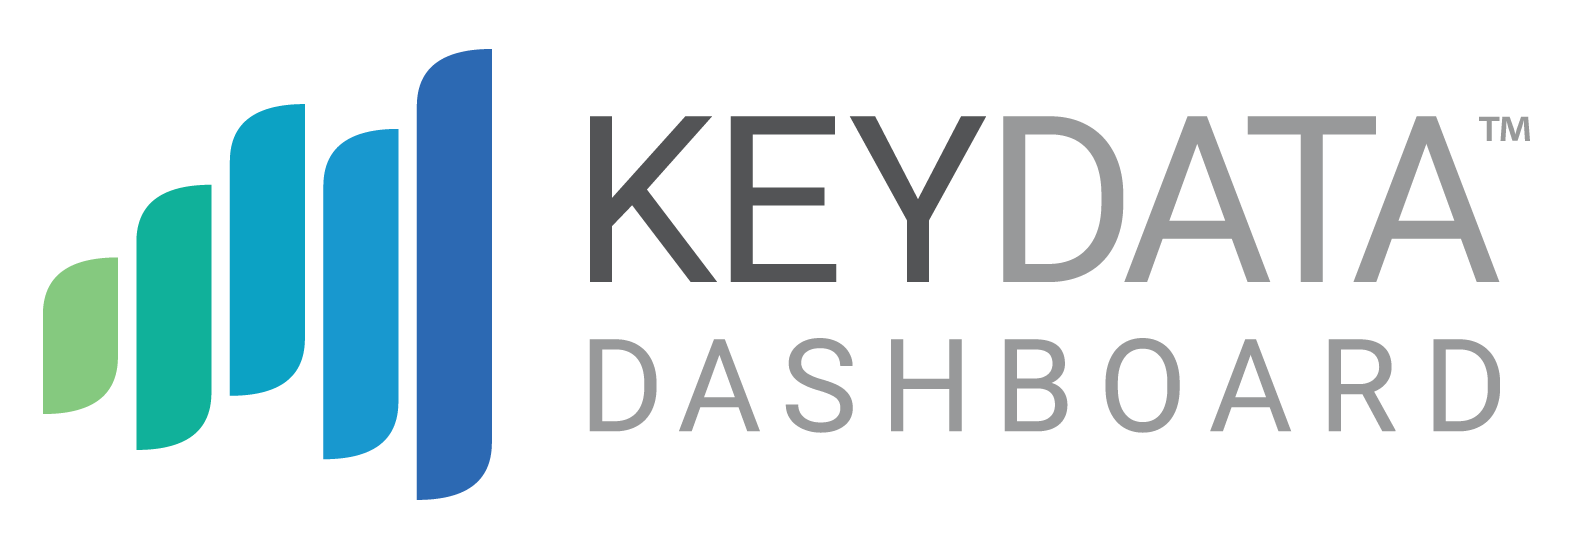 Key-Data-Dashboard-color-2-2019.png